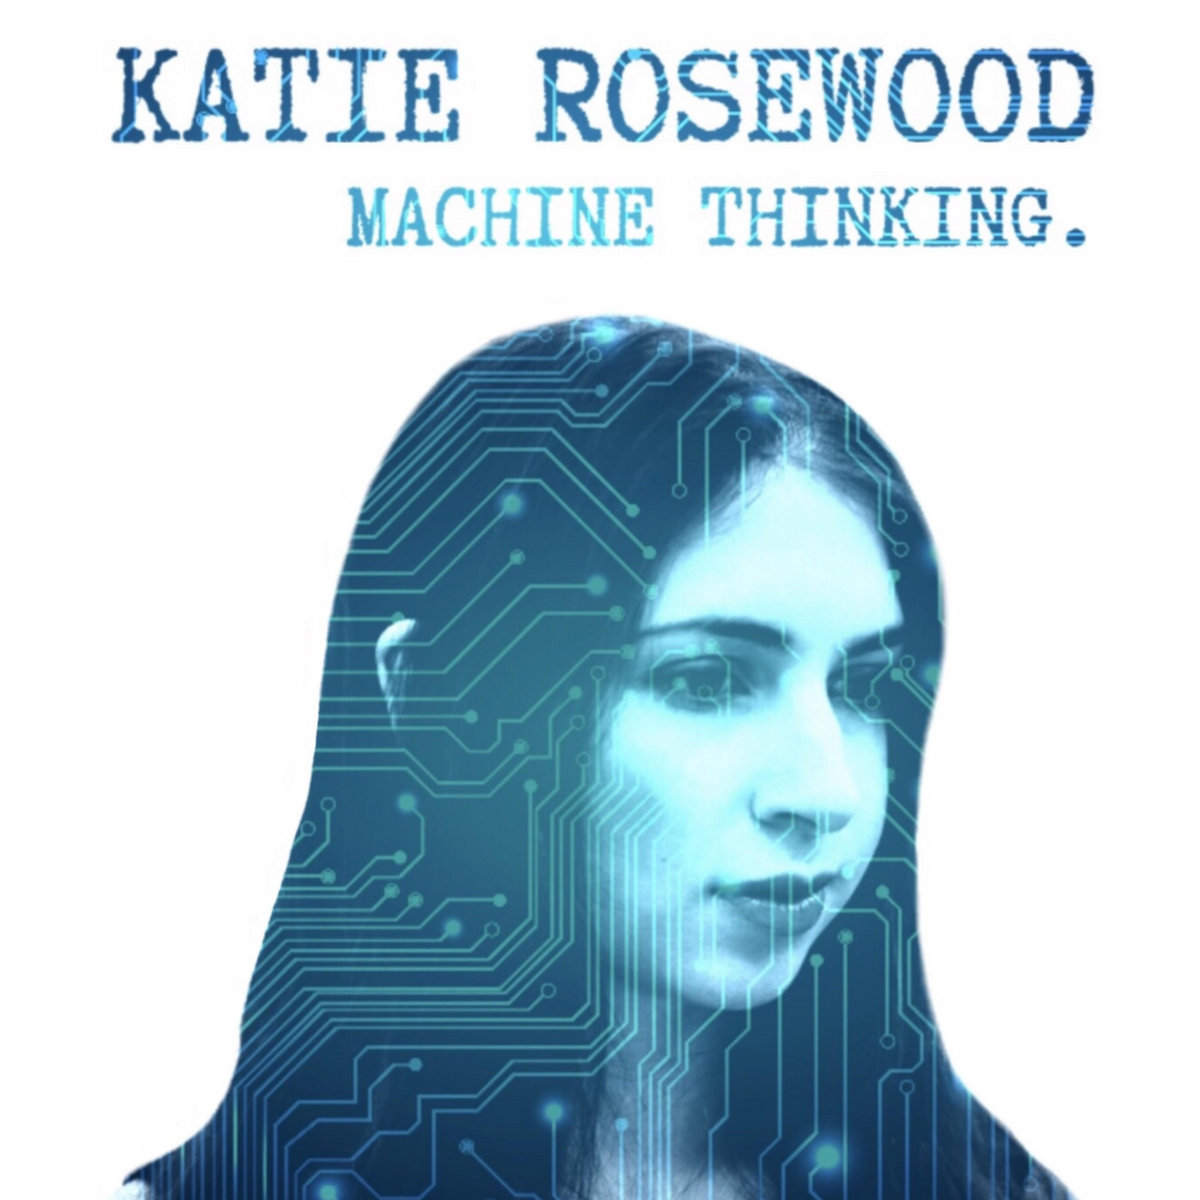 Machine Thinking by Katie Rosewood